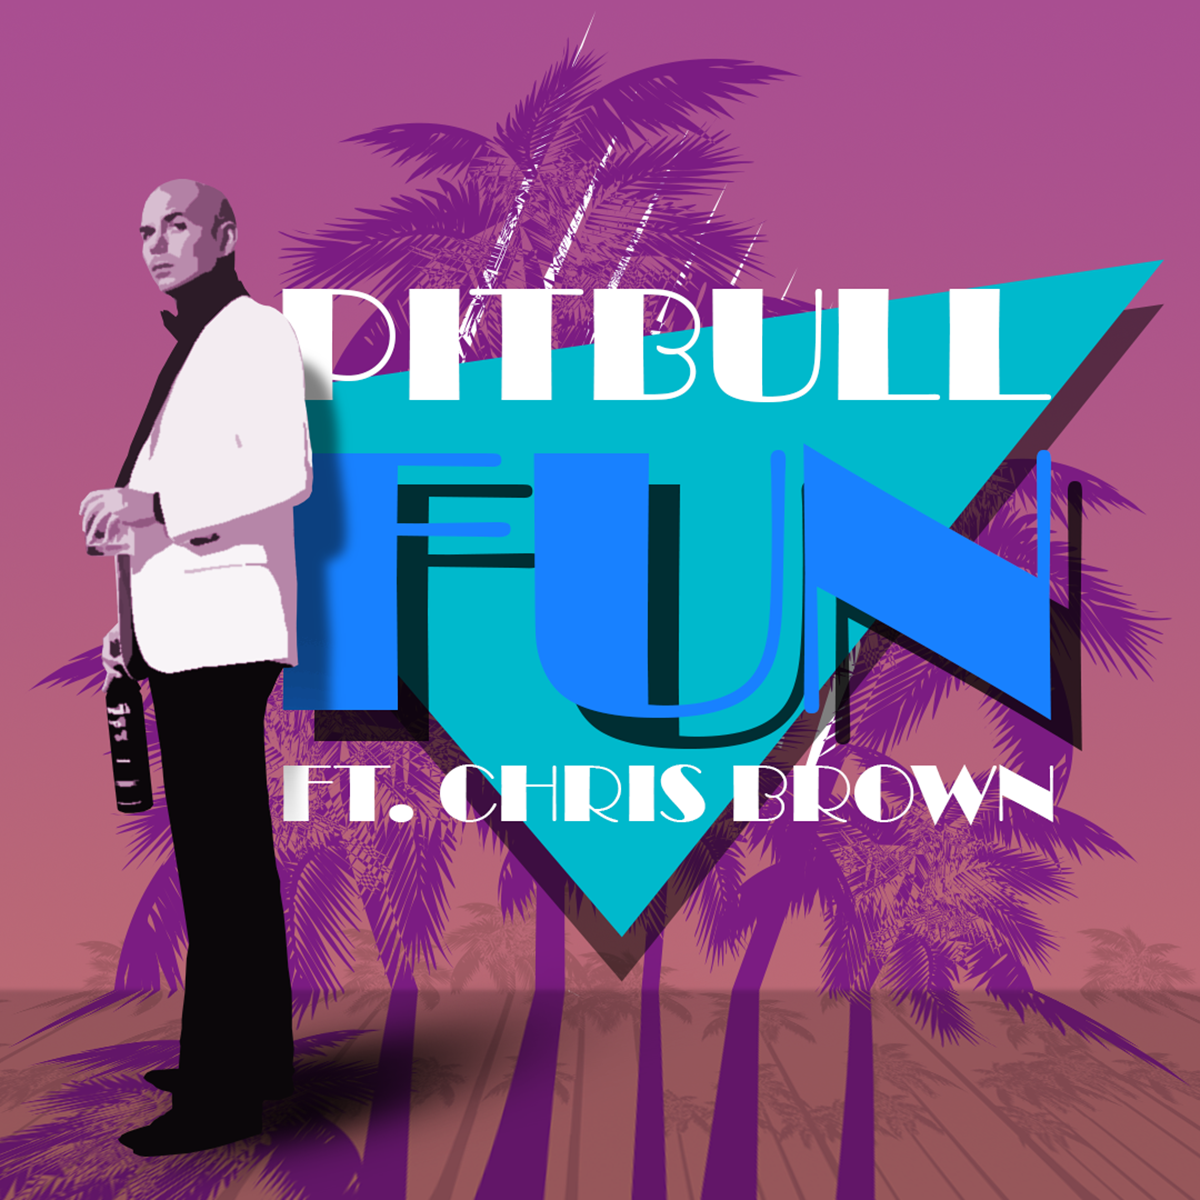 Pitbull-Fun-2015-1200x1200.png